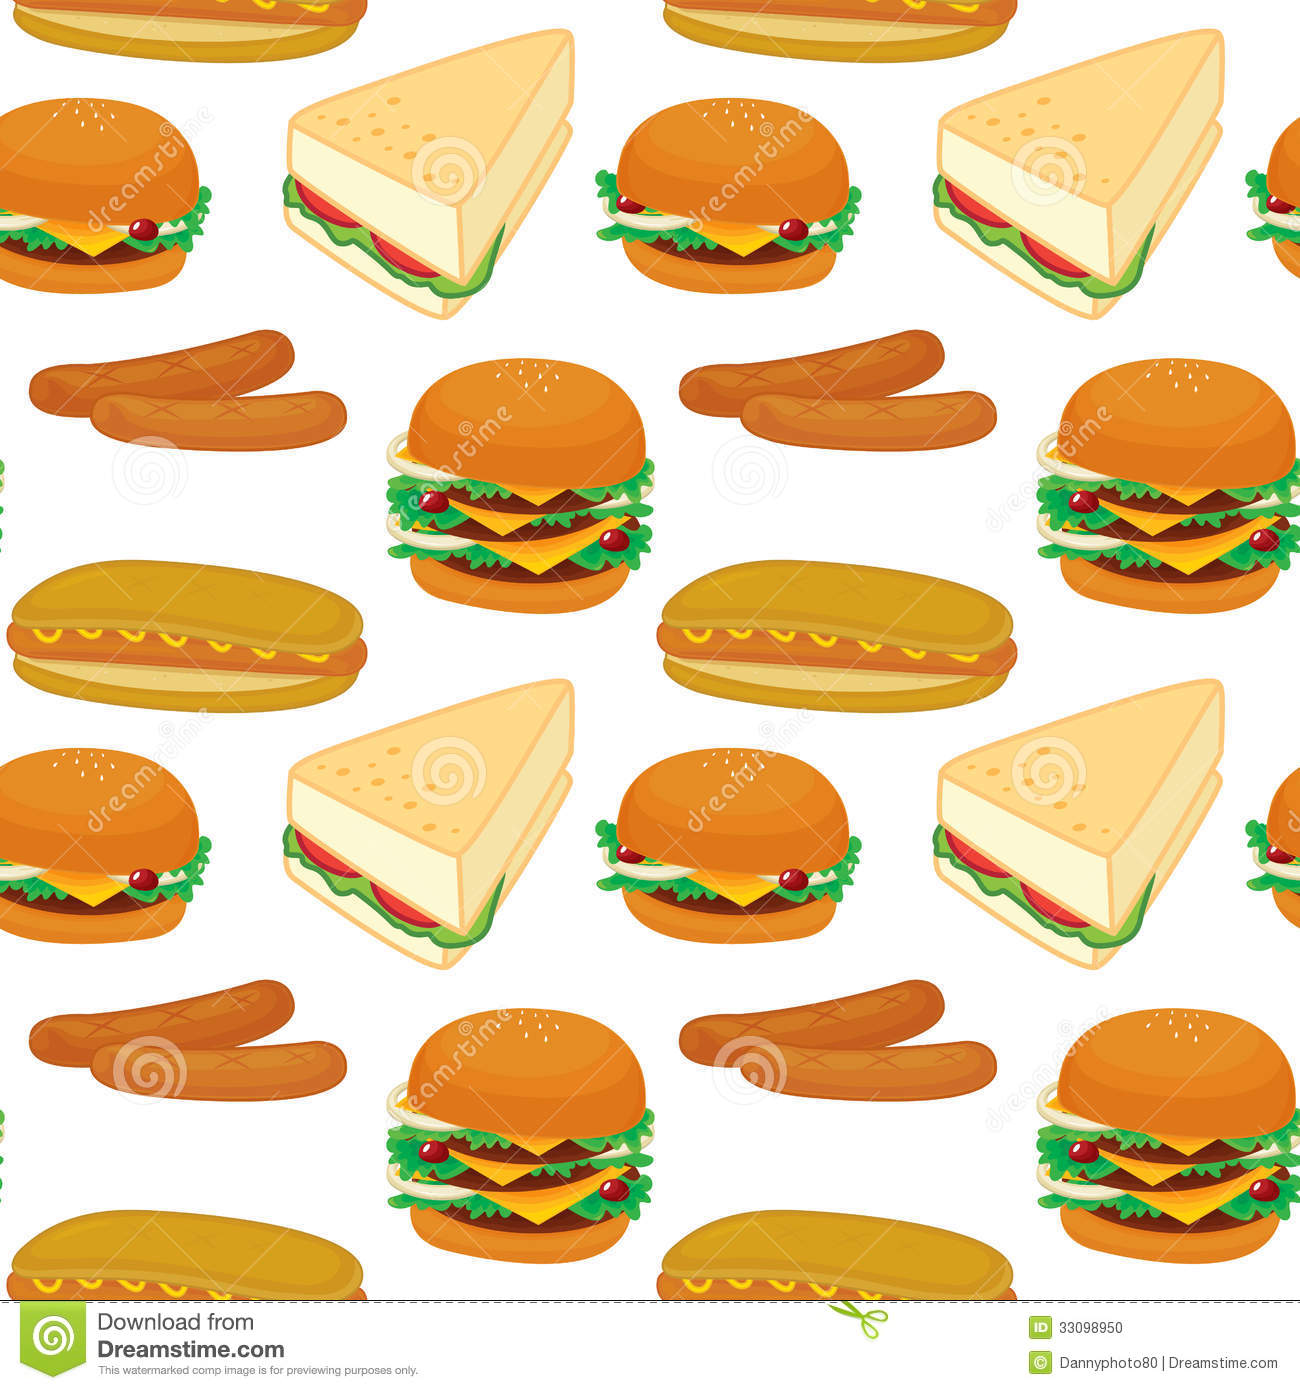 Illustration of a sandwich on a white background.